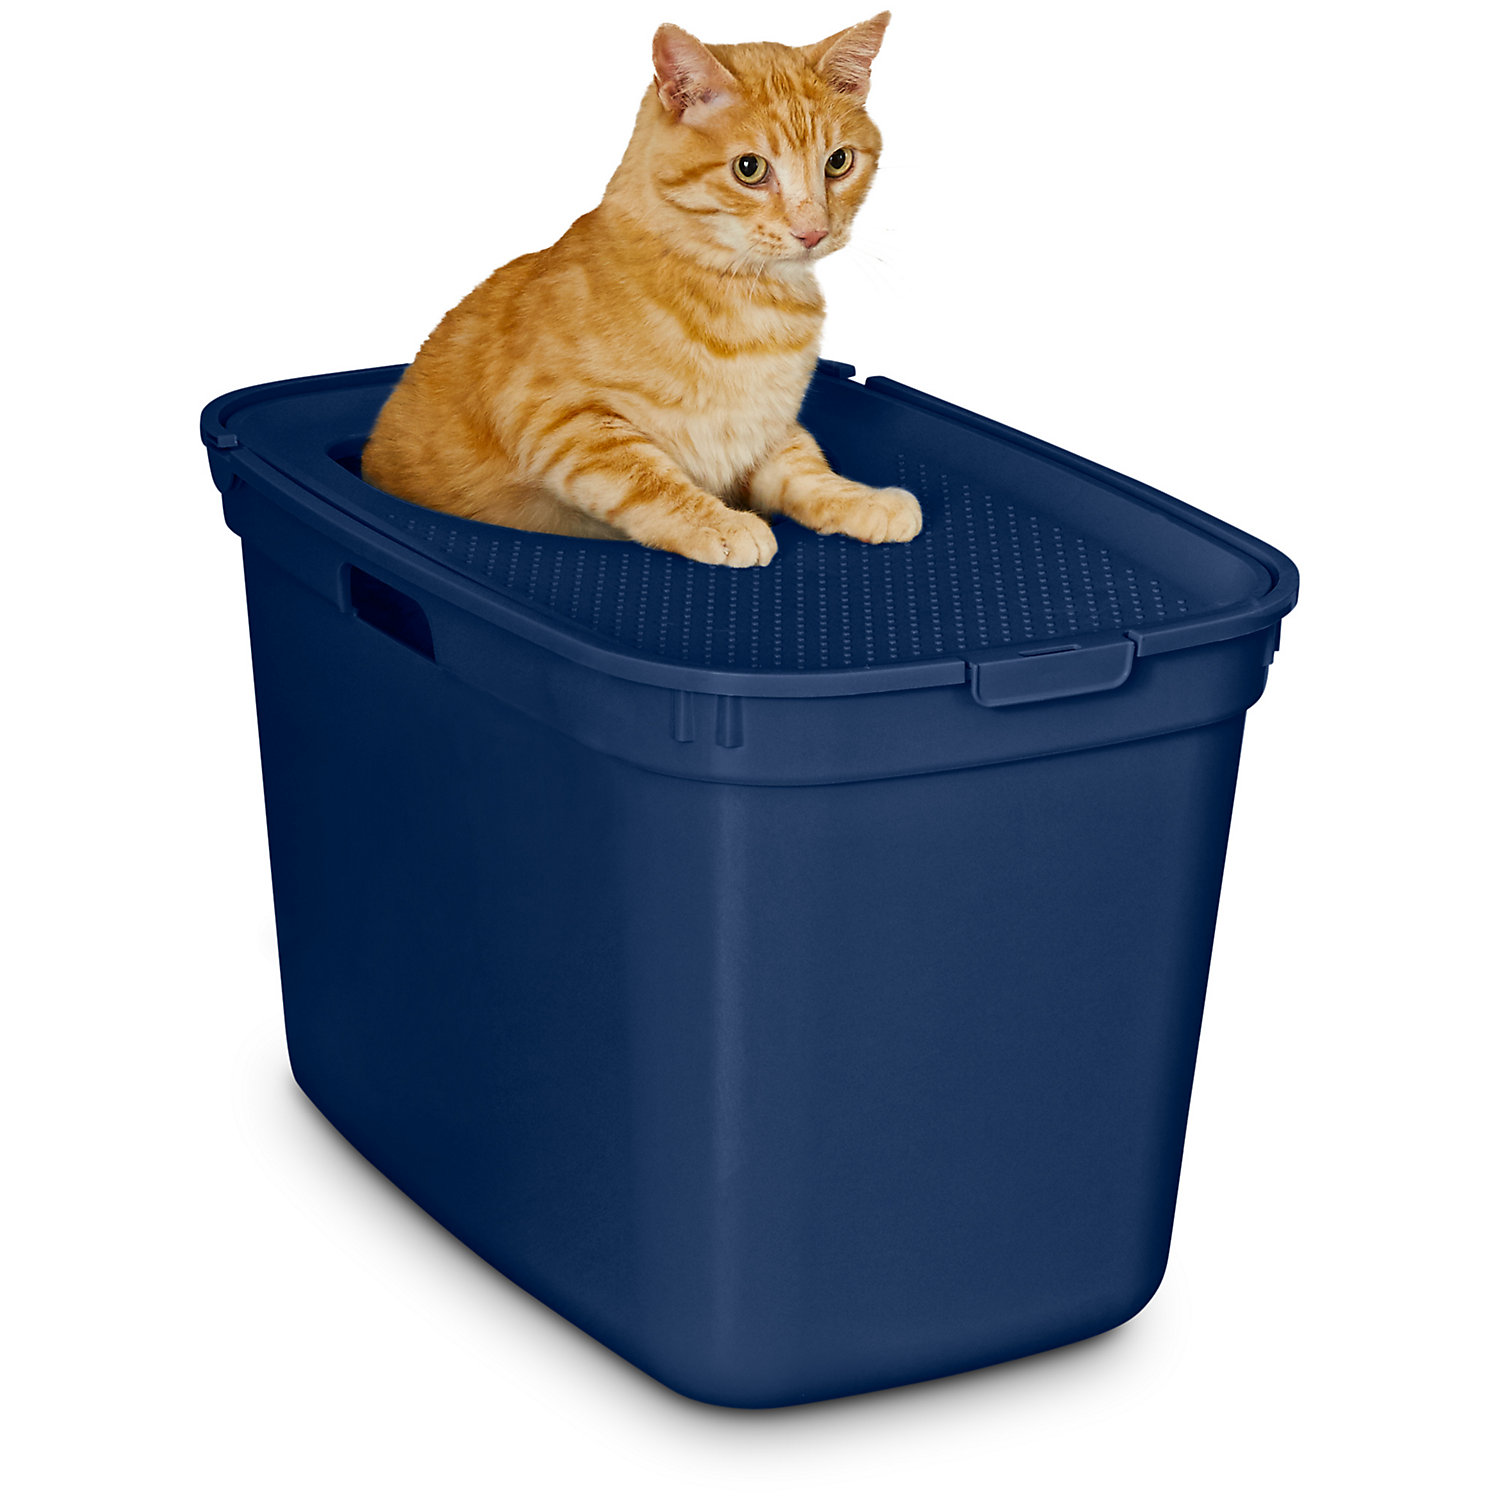 Practical color for top opening litter box